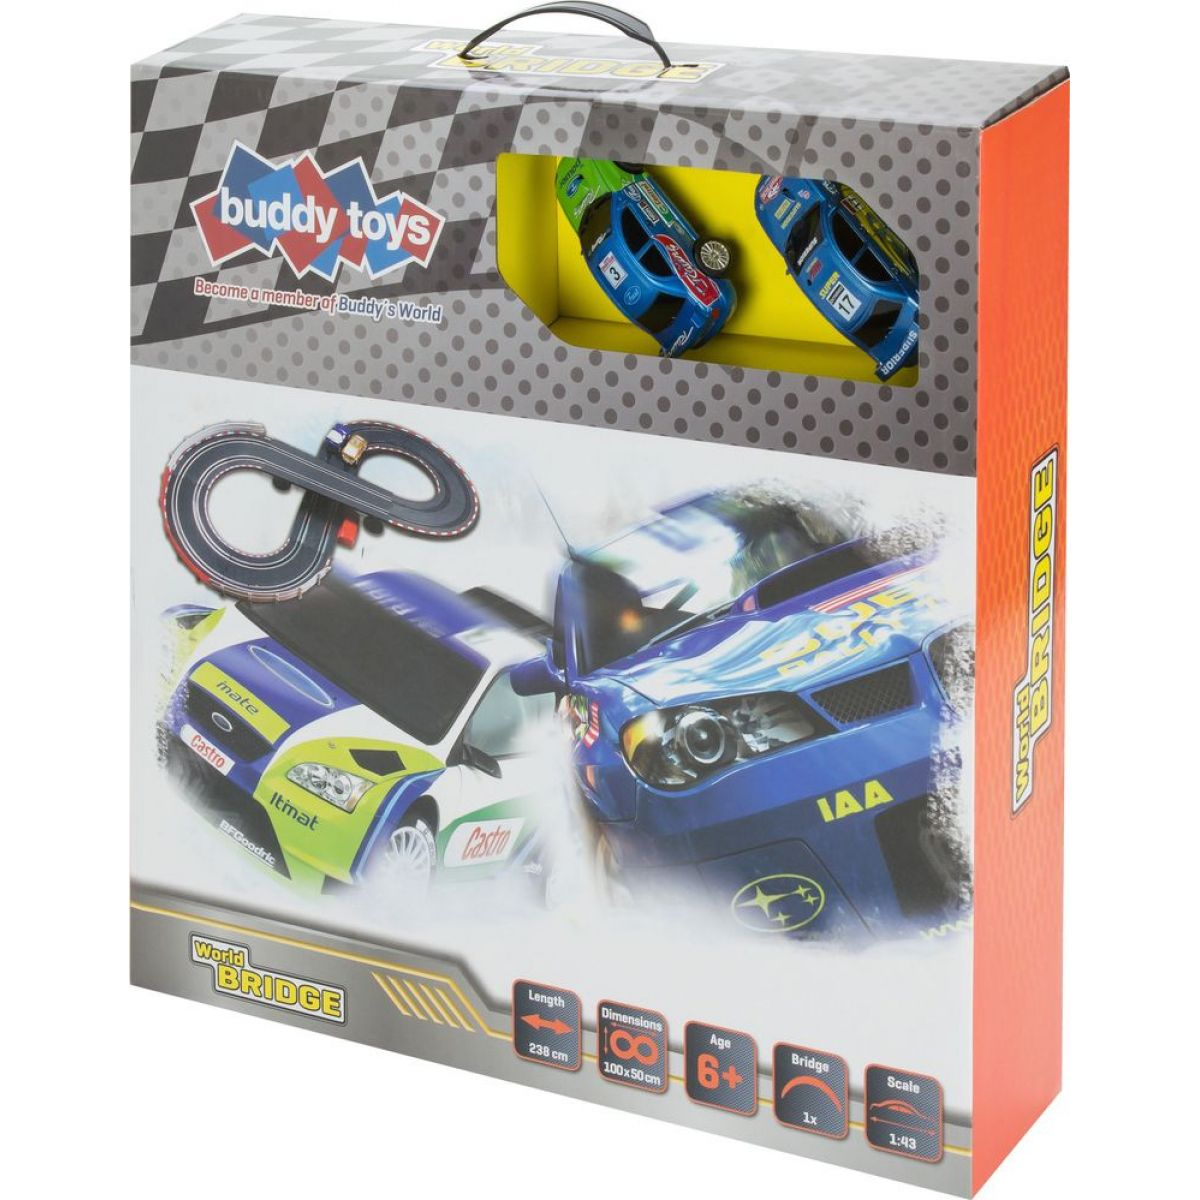 Buddy toys Autodráha Bridge